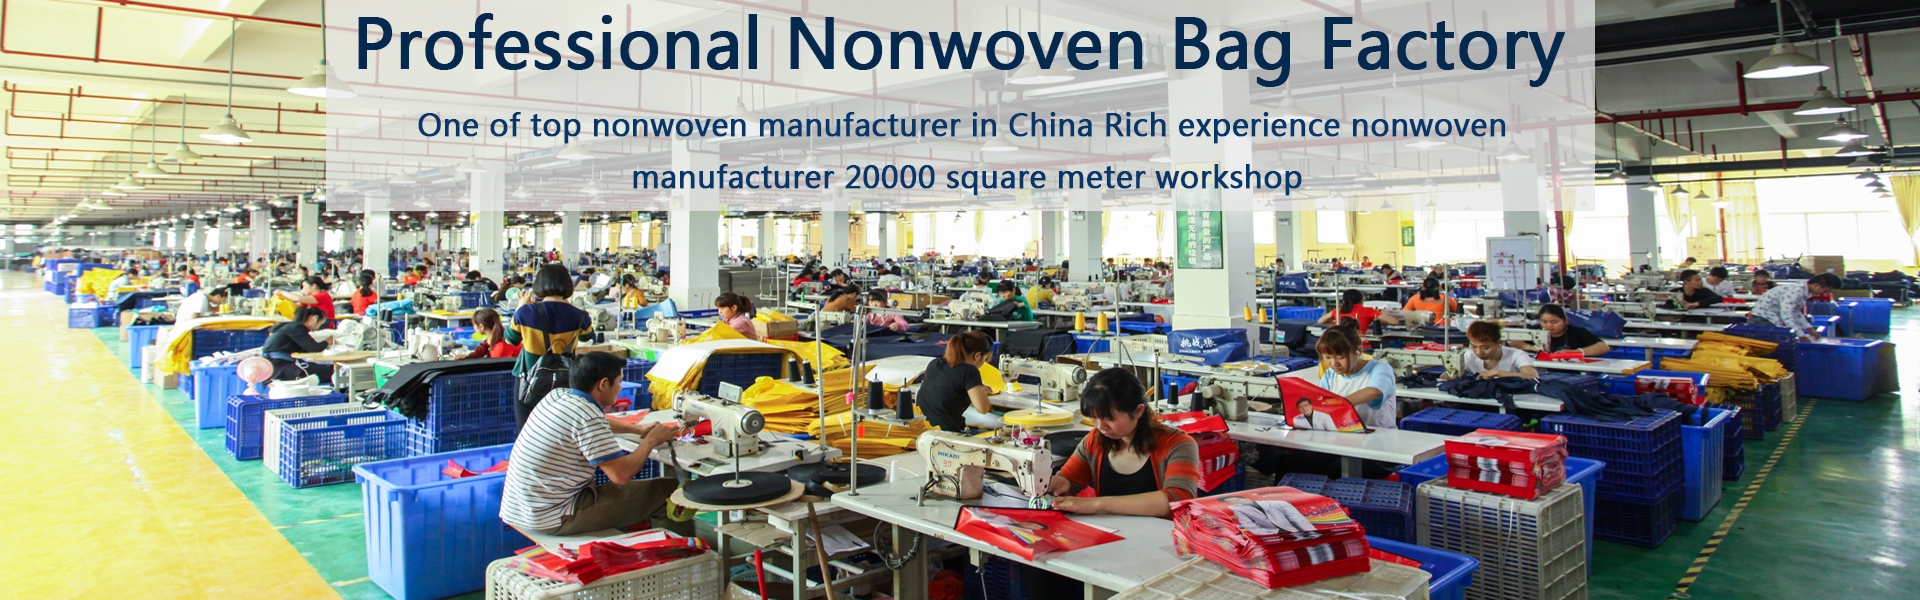 Nonwoven Bag Factory